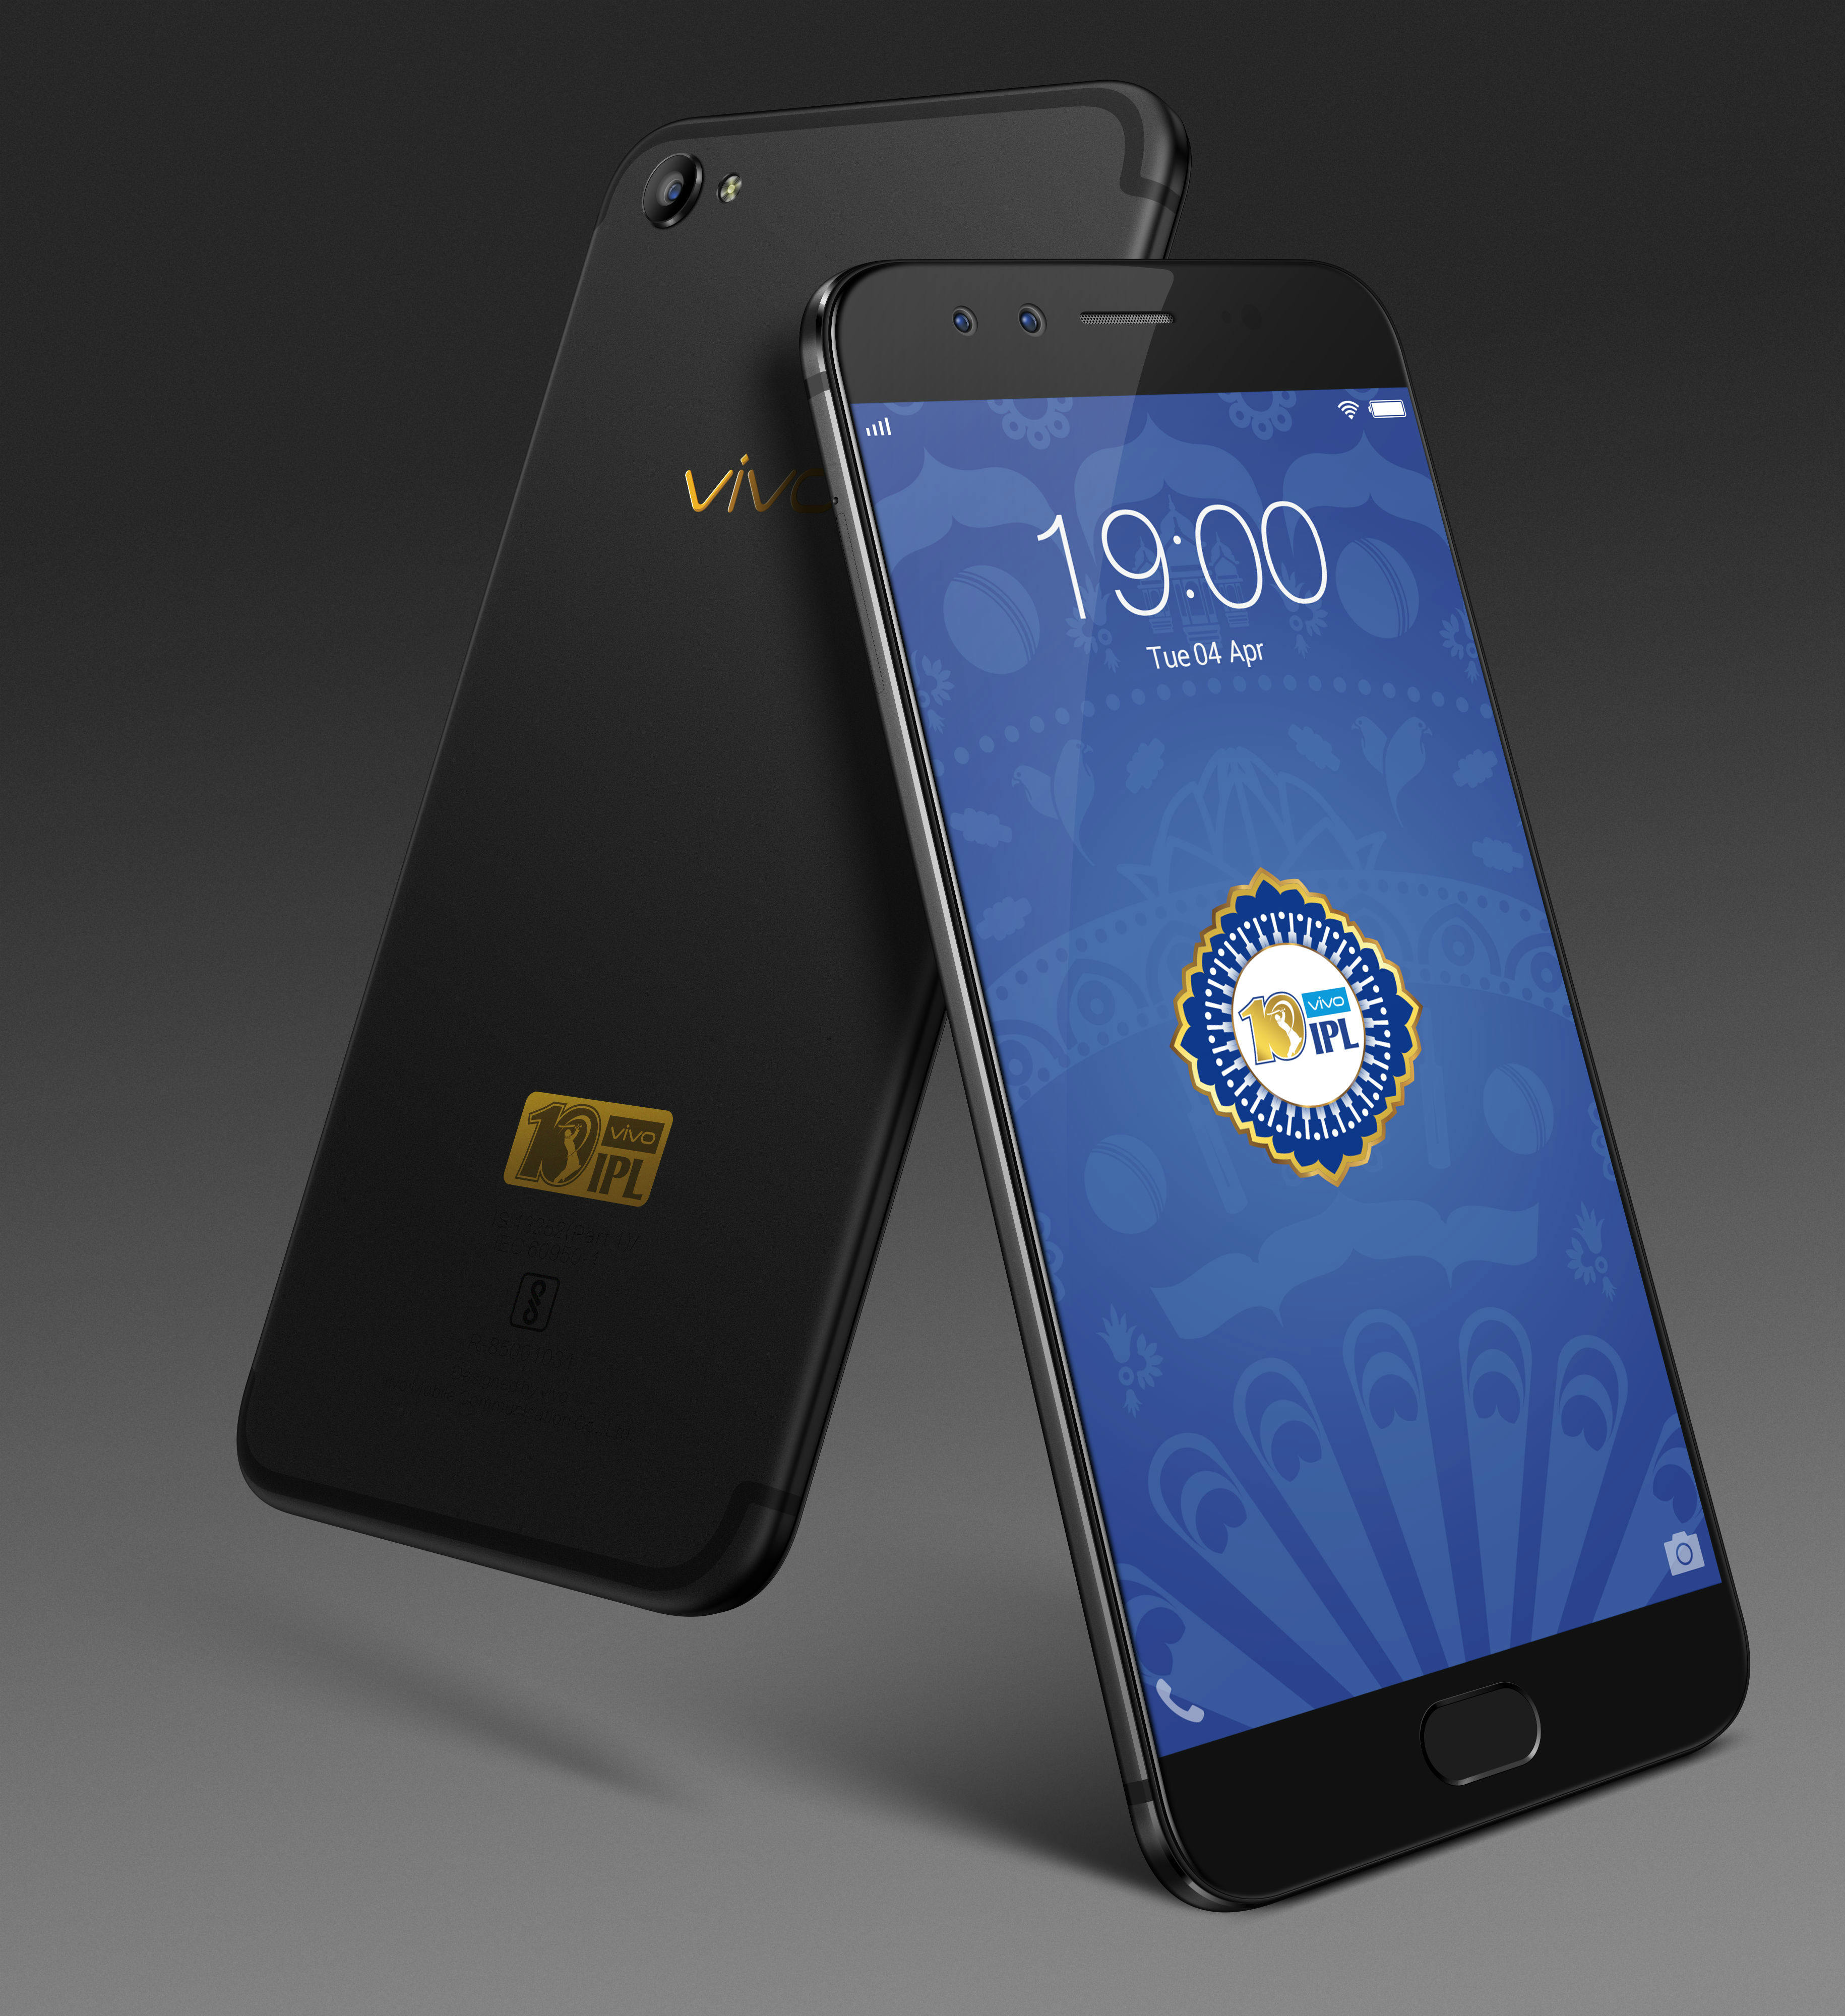 Vivo V5 Plus in Matte black color